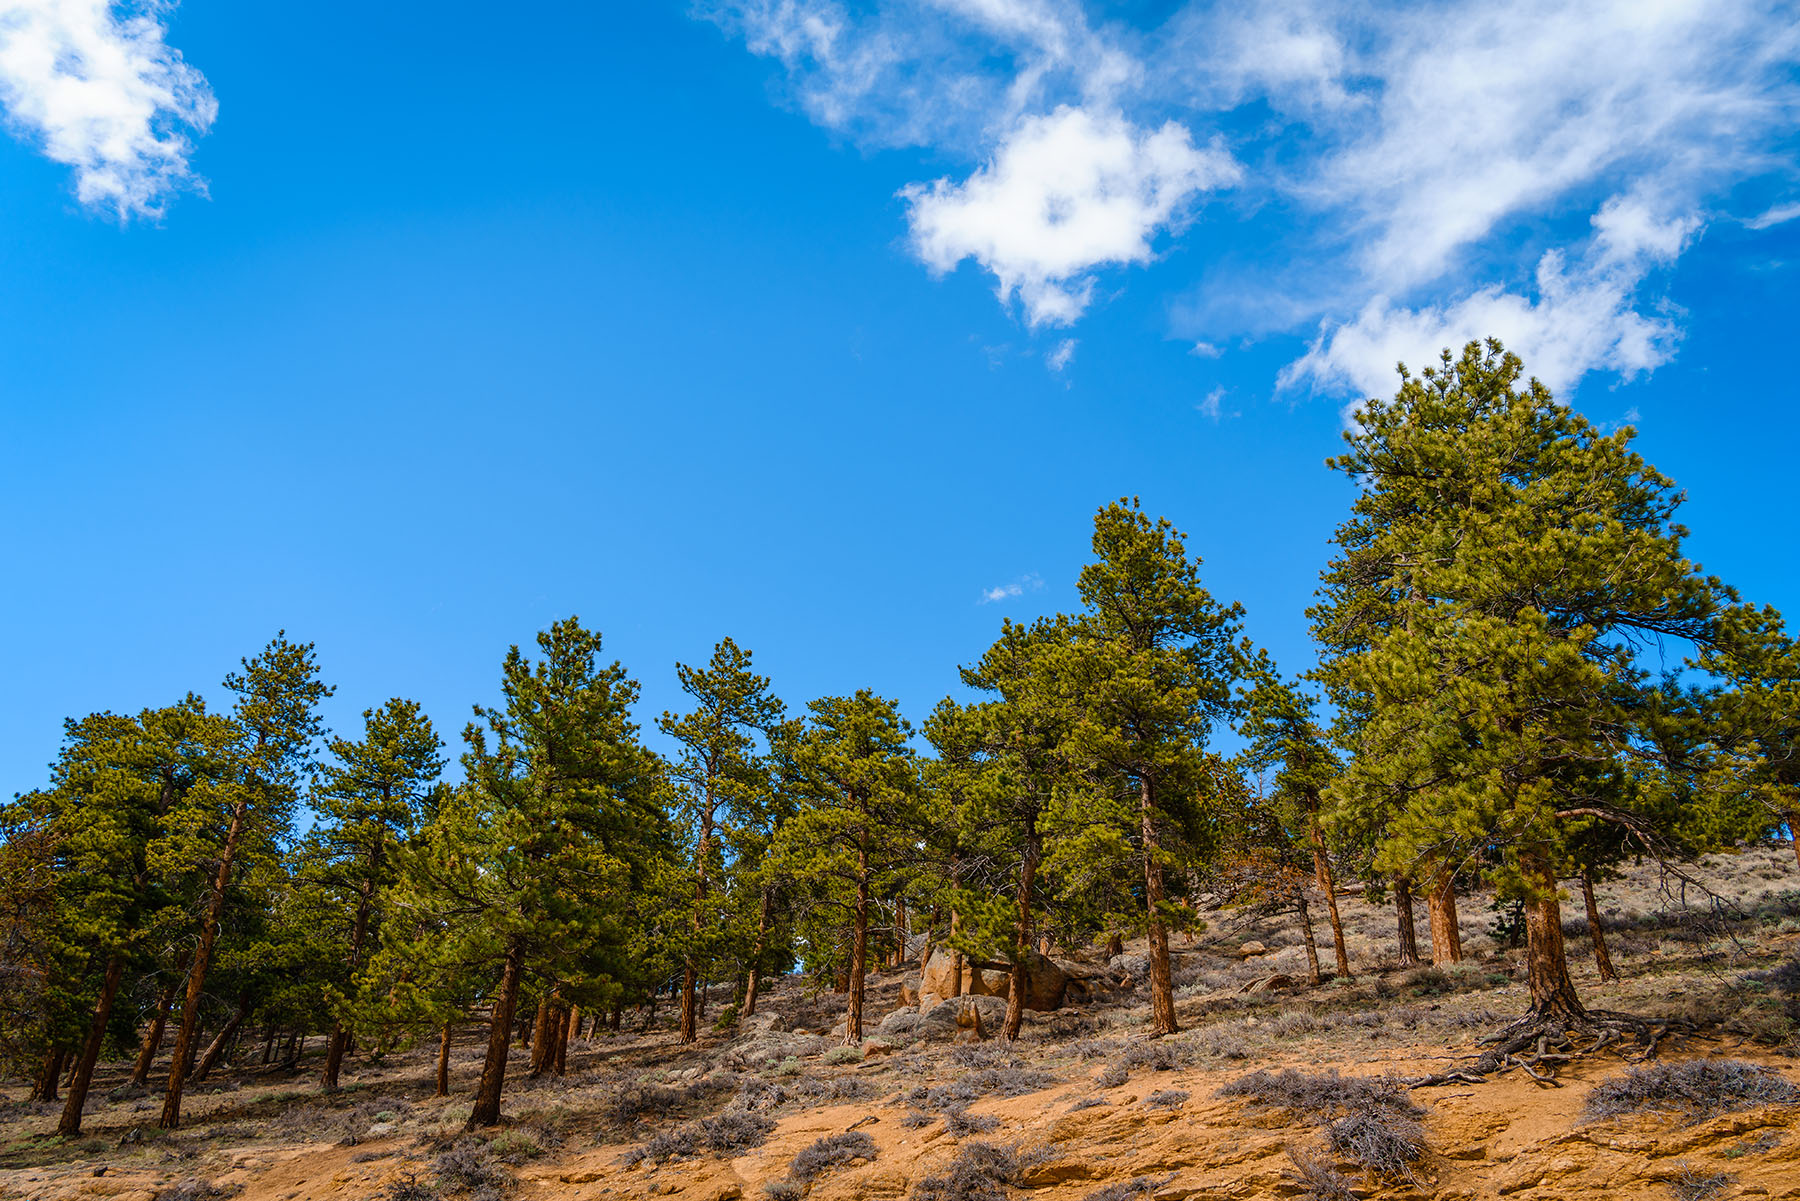 Pine trees grow on a bluff in Colorado's Rocky Mountain National Park.